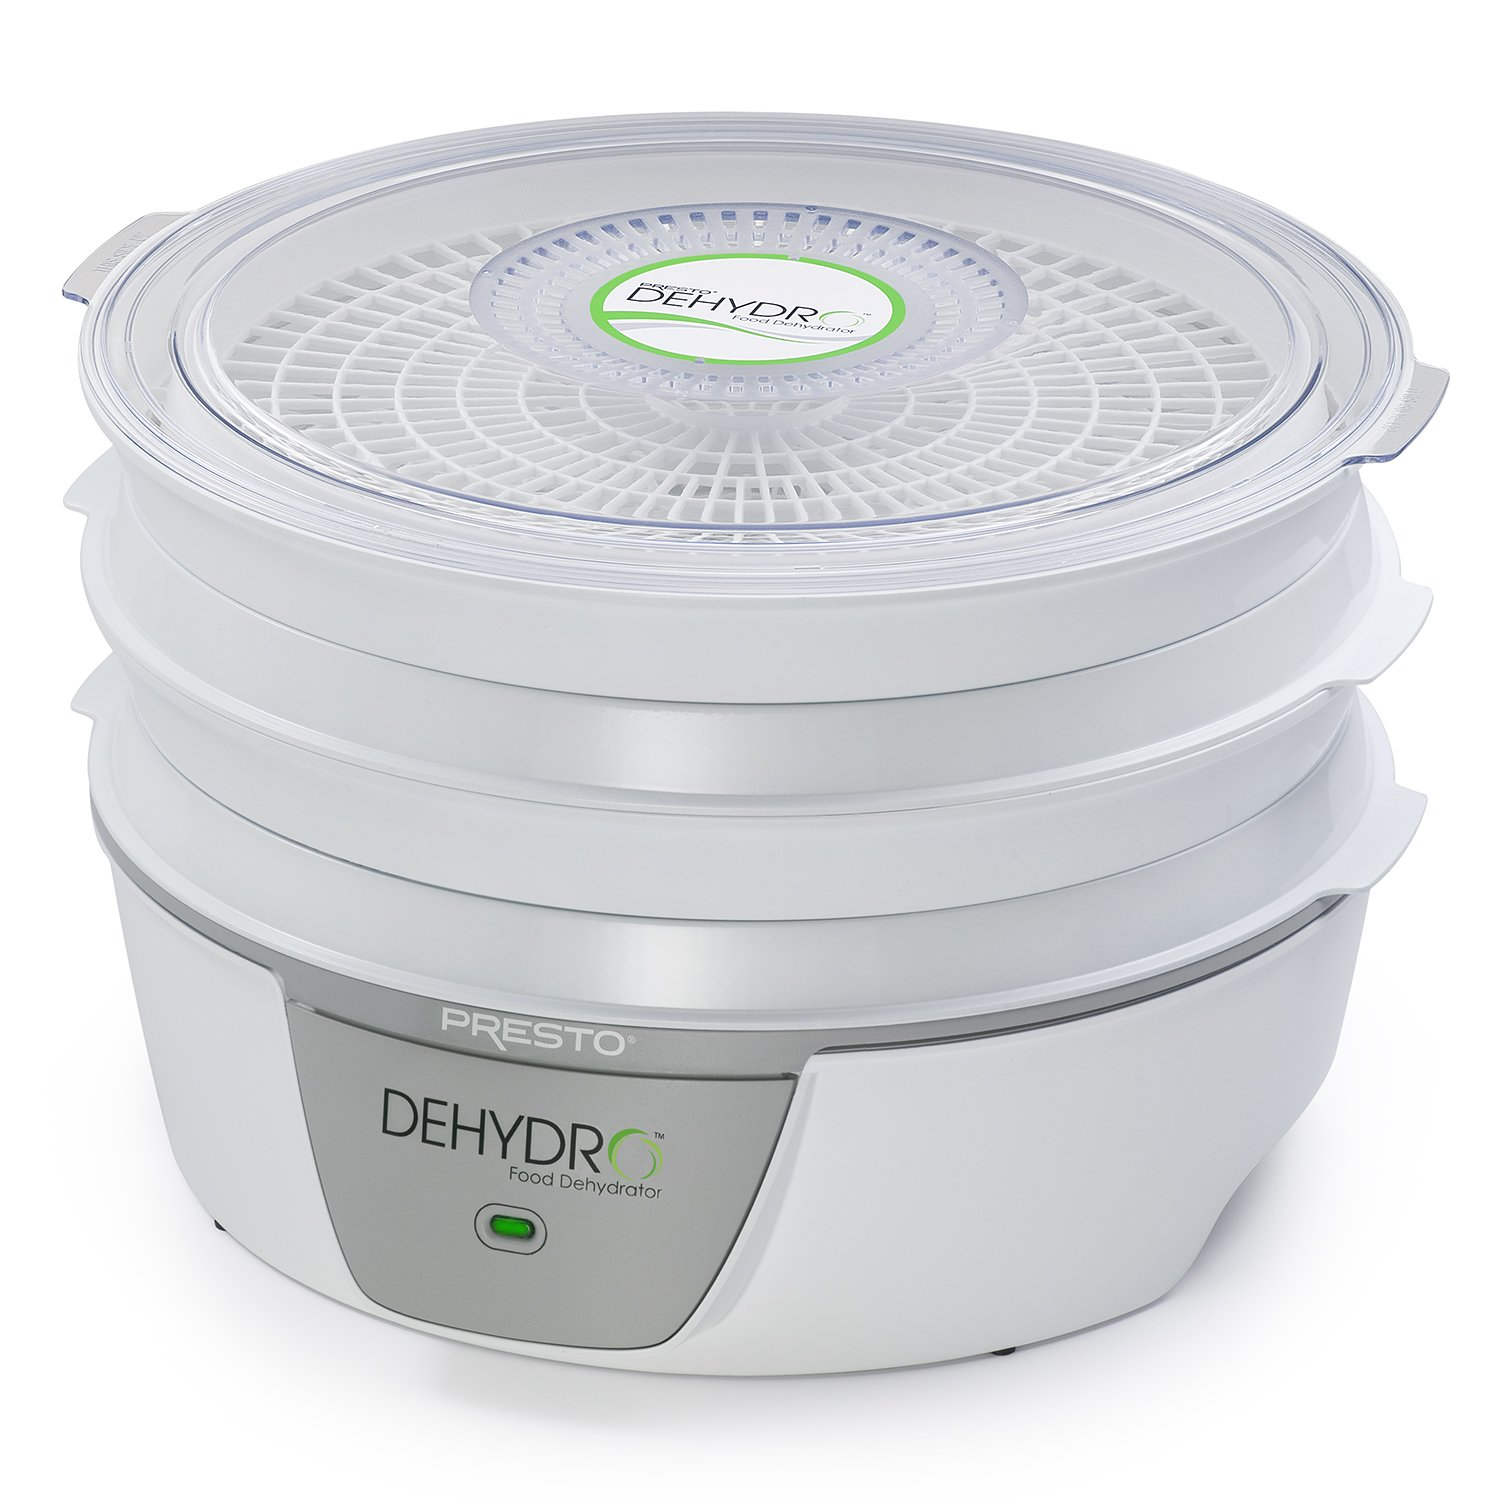 Dog Treats In Food Dehydrator